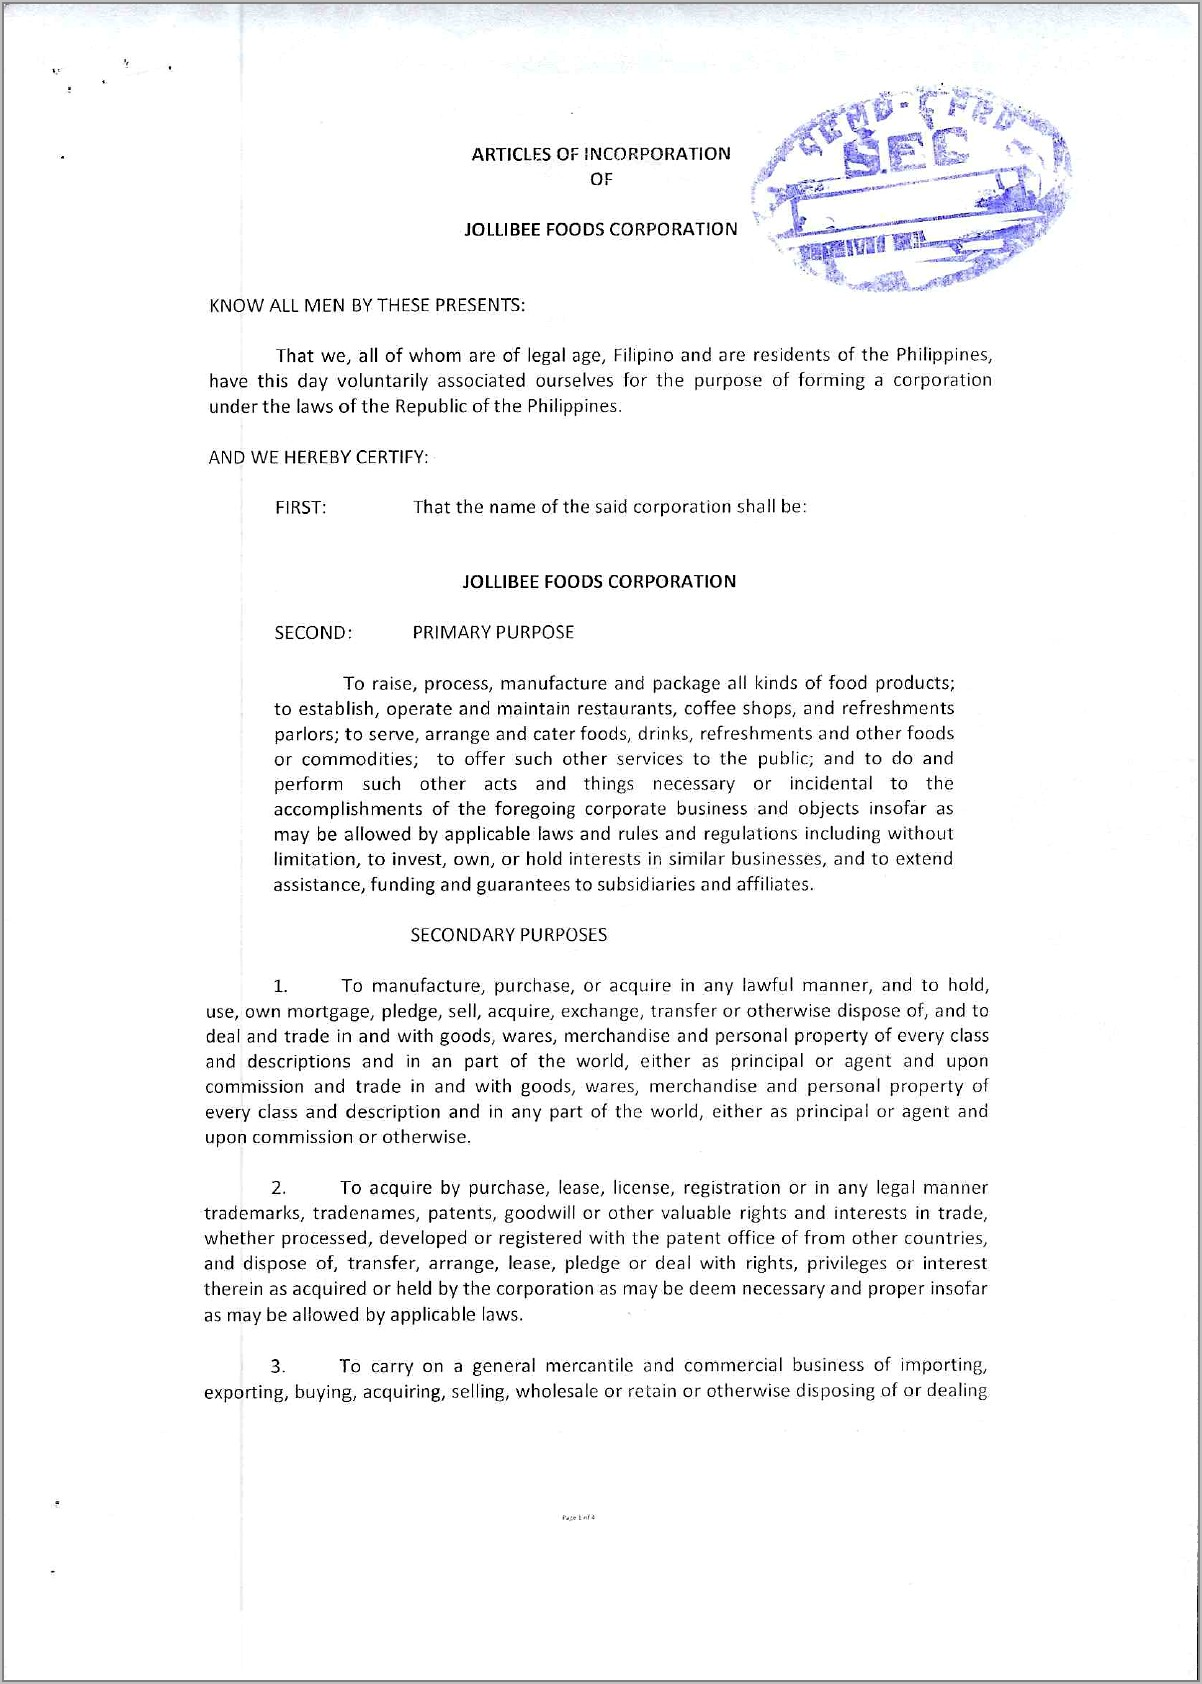 Sample Articles Of Incorporation Food Business Philippines